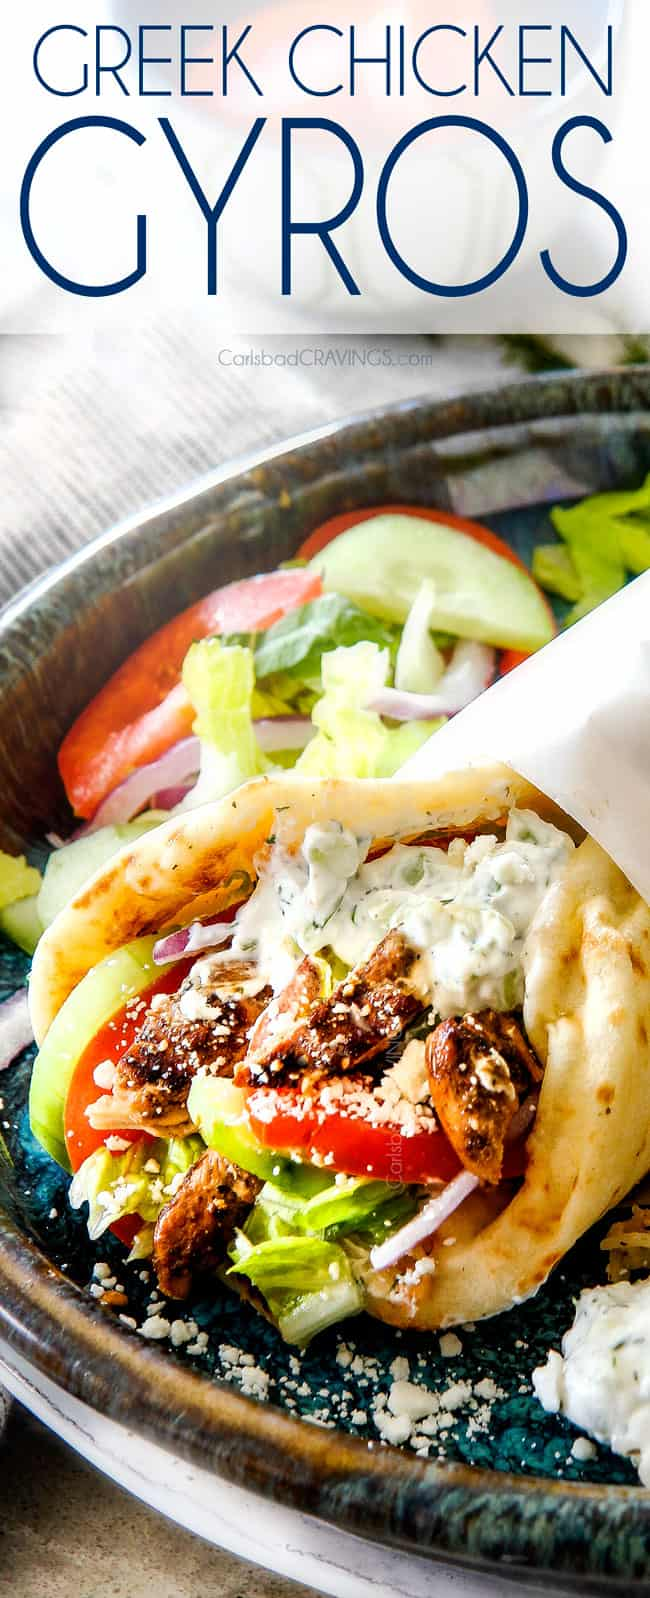 up close of a chicken gyro  with Greek chicken, tomatoes, lettuce and tzatziki wrapped in paper